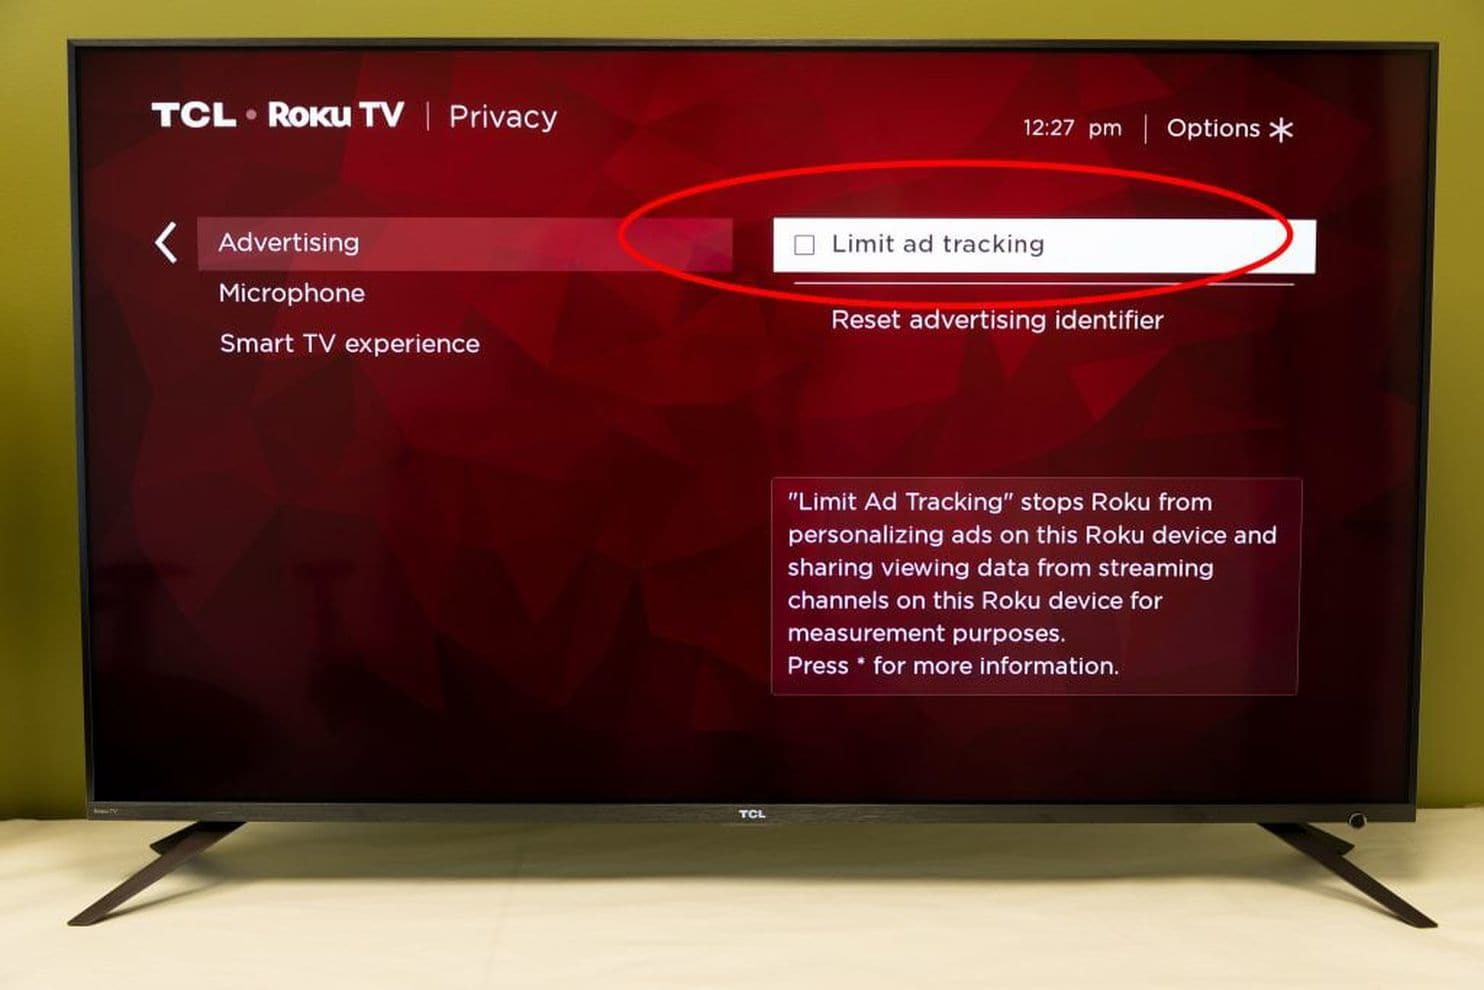 Here are 15 privacy settings you should change from defaults, from Linkedin to cellphones to smart TVs